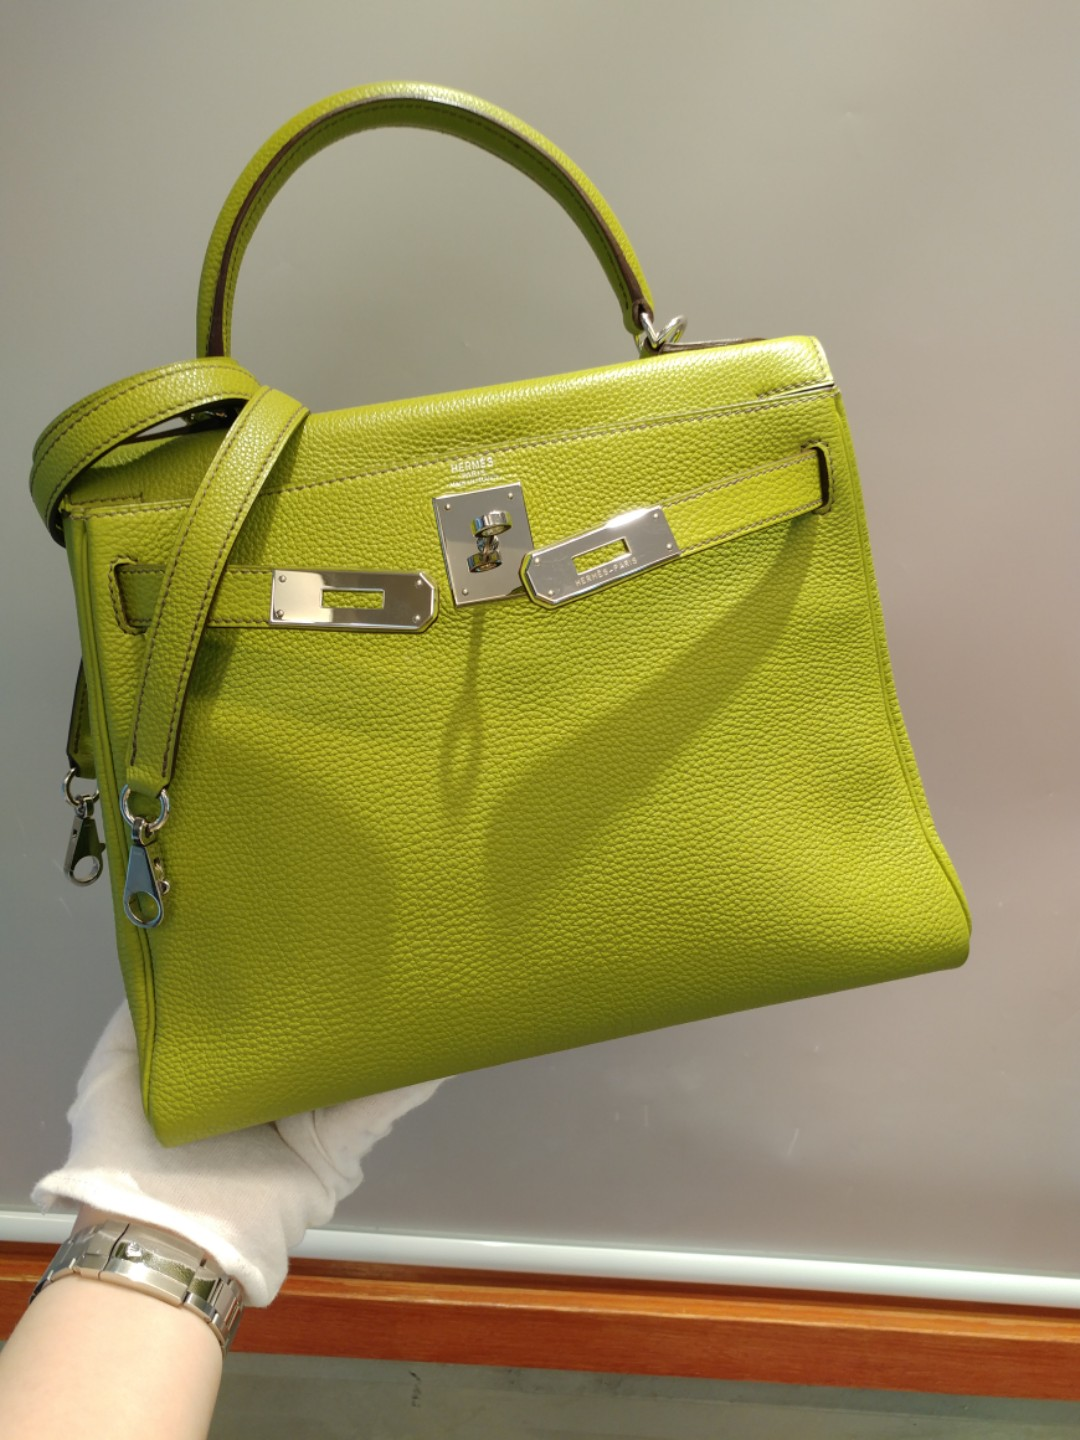 7c55f1f478a3 Hermes kelly 28 anis green togo